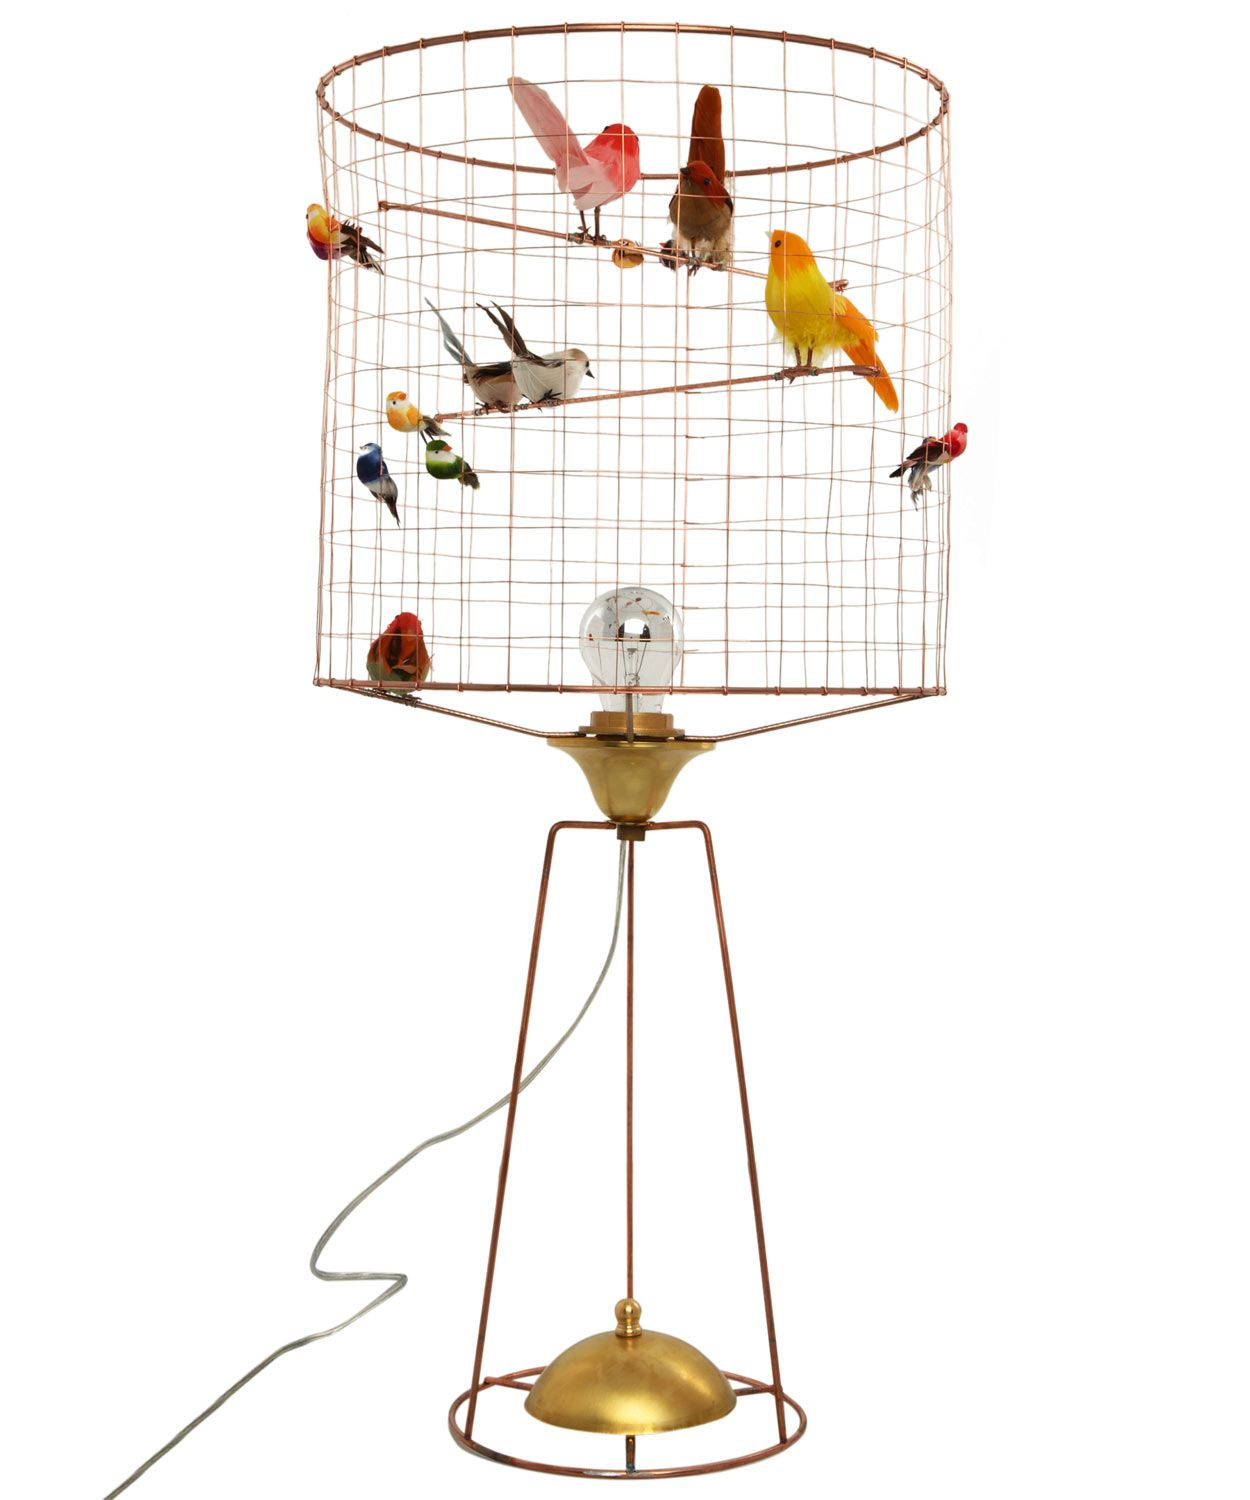 Haute volire bird cage table lamp mathieu challires shop more haute volire bird cage table lamp mathieu challires shop more lighting from the mathieu geotapseo Image collections